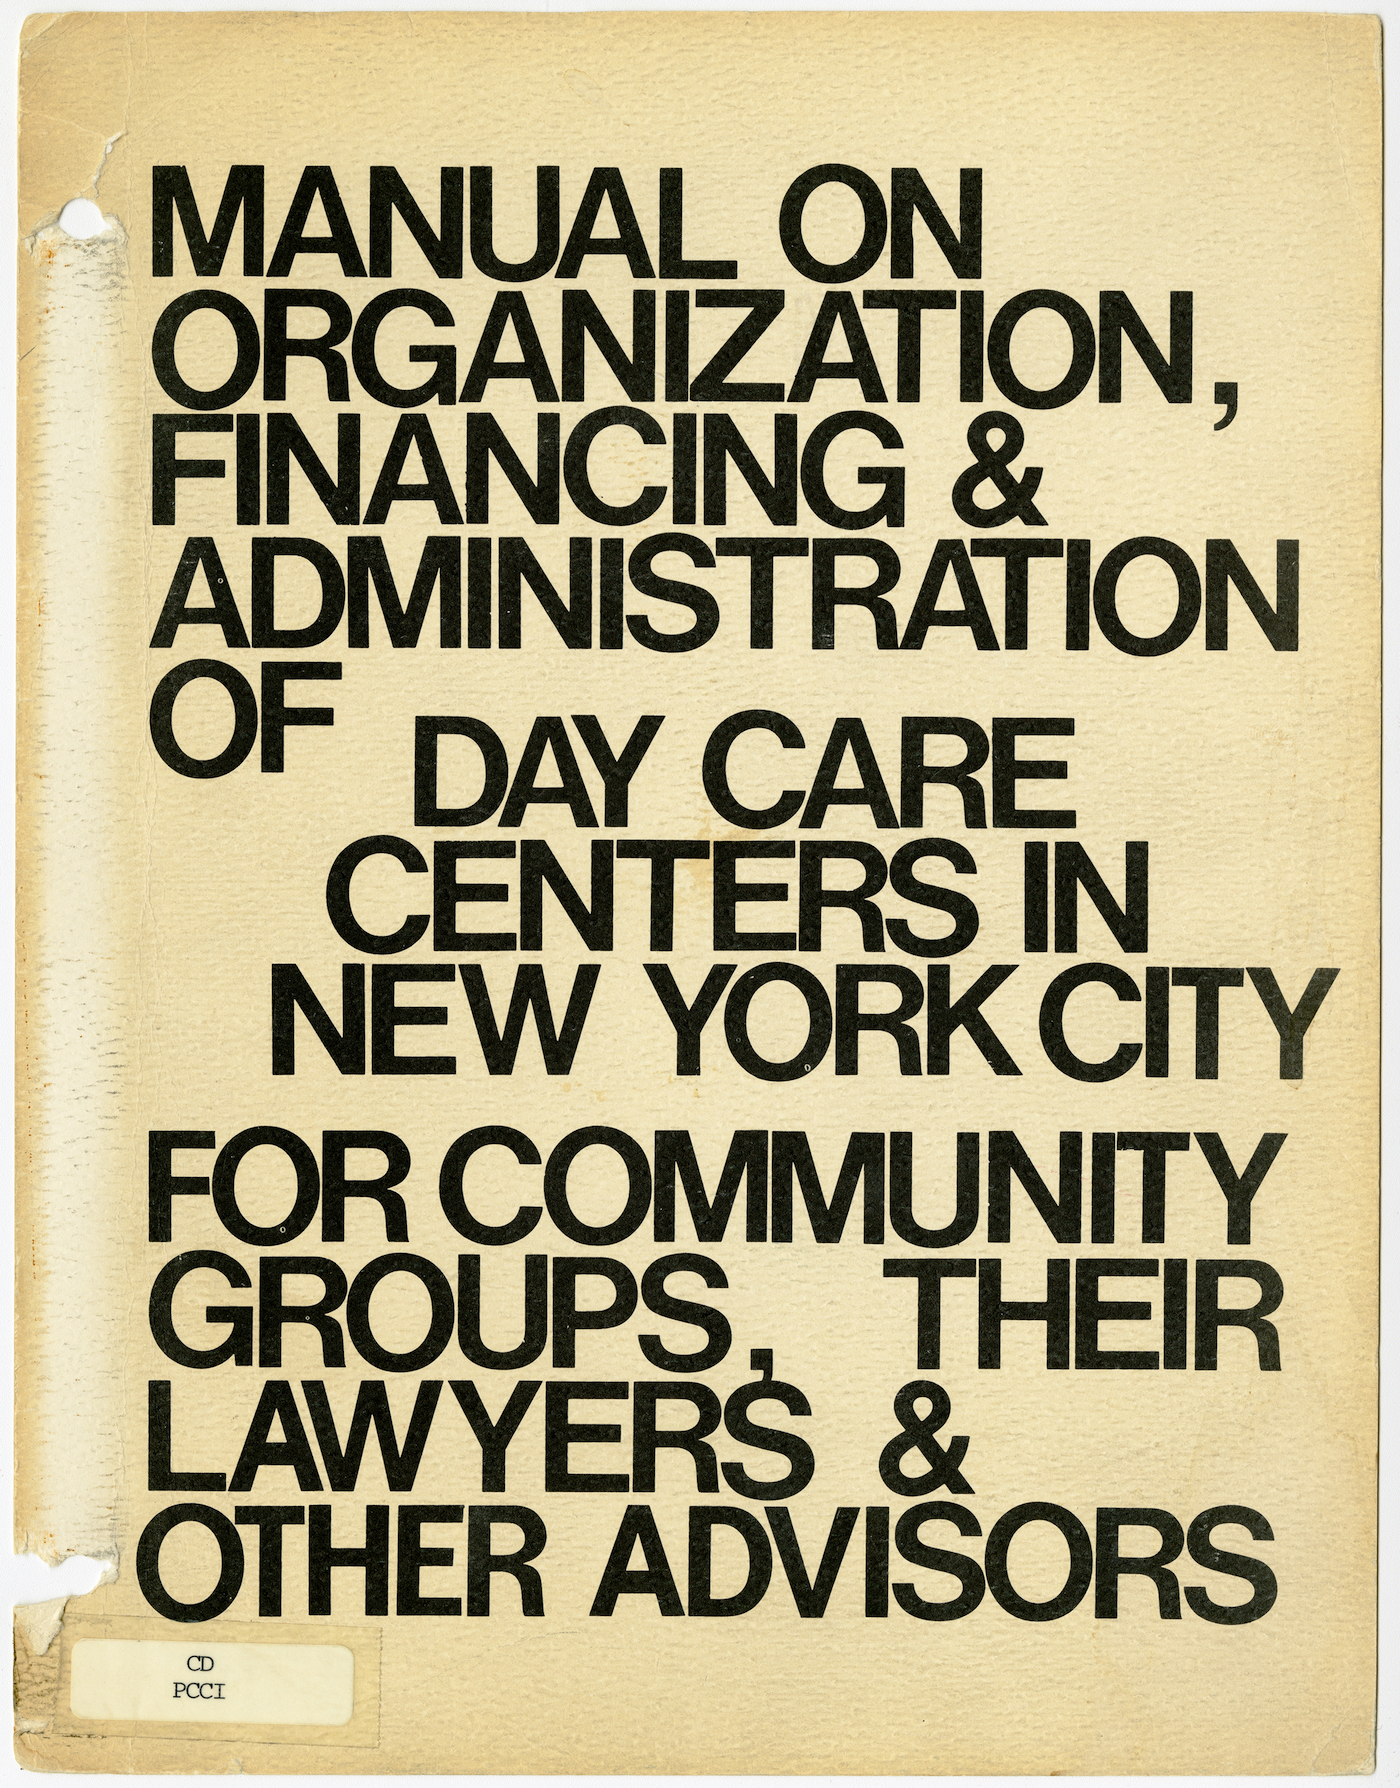 Manual on Day Care Centers in New York City (1970) (Ronald Shiffman collection on the Pratt Center for Community Development, 2013.023, Box 59, Folder 8; Brooklyn Historical Society)